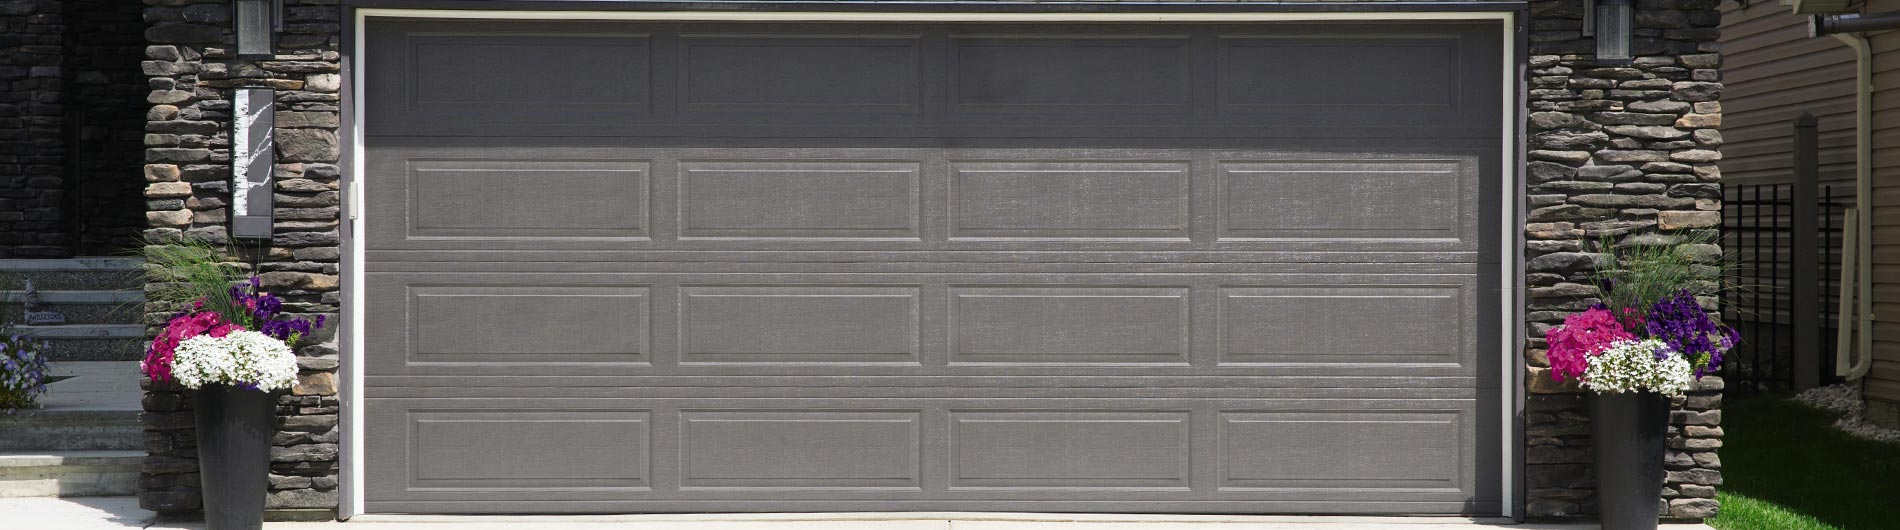 model-9100-Steel-Garage-Door-Ranch-Custom-Paint